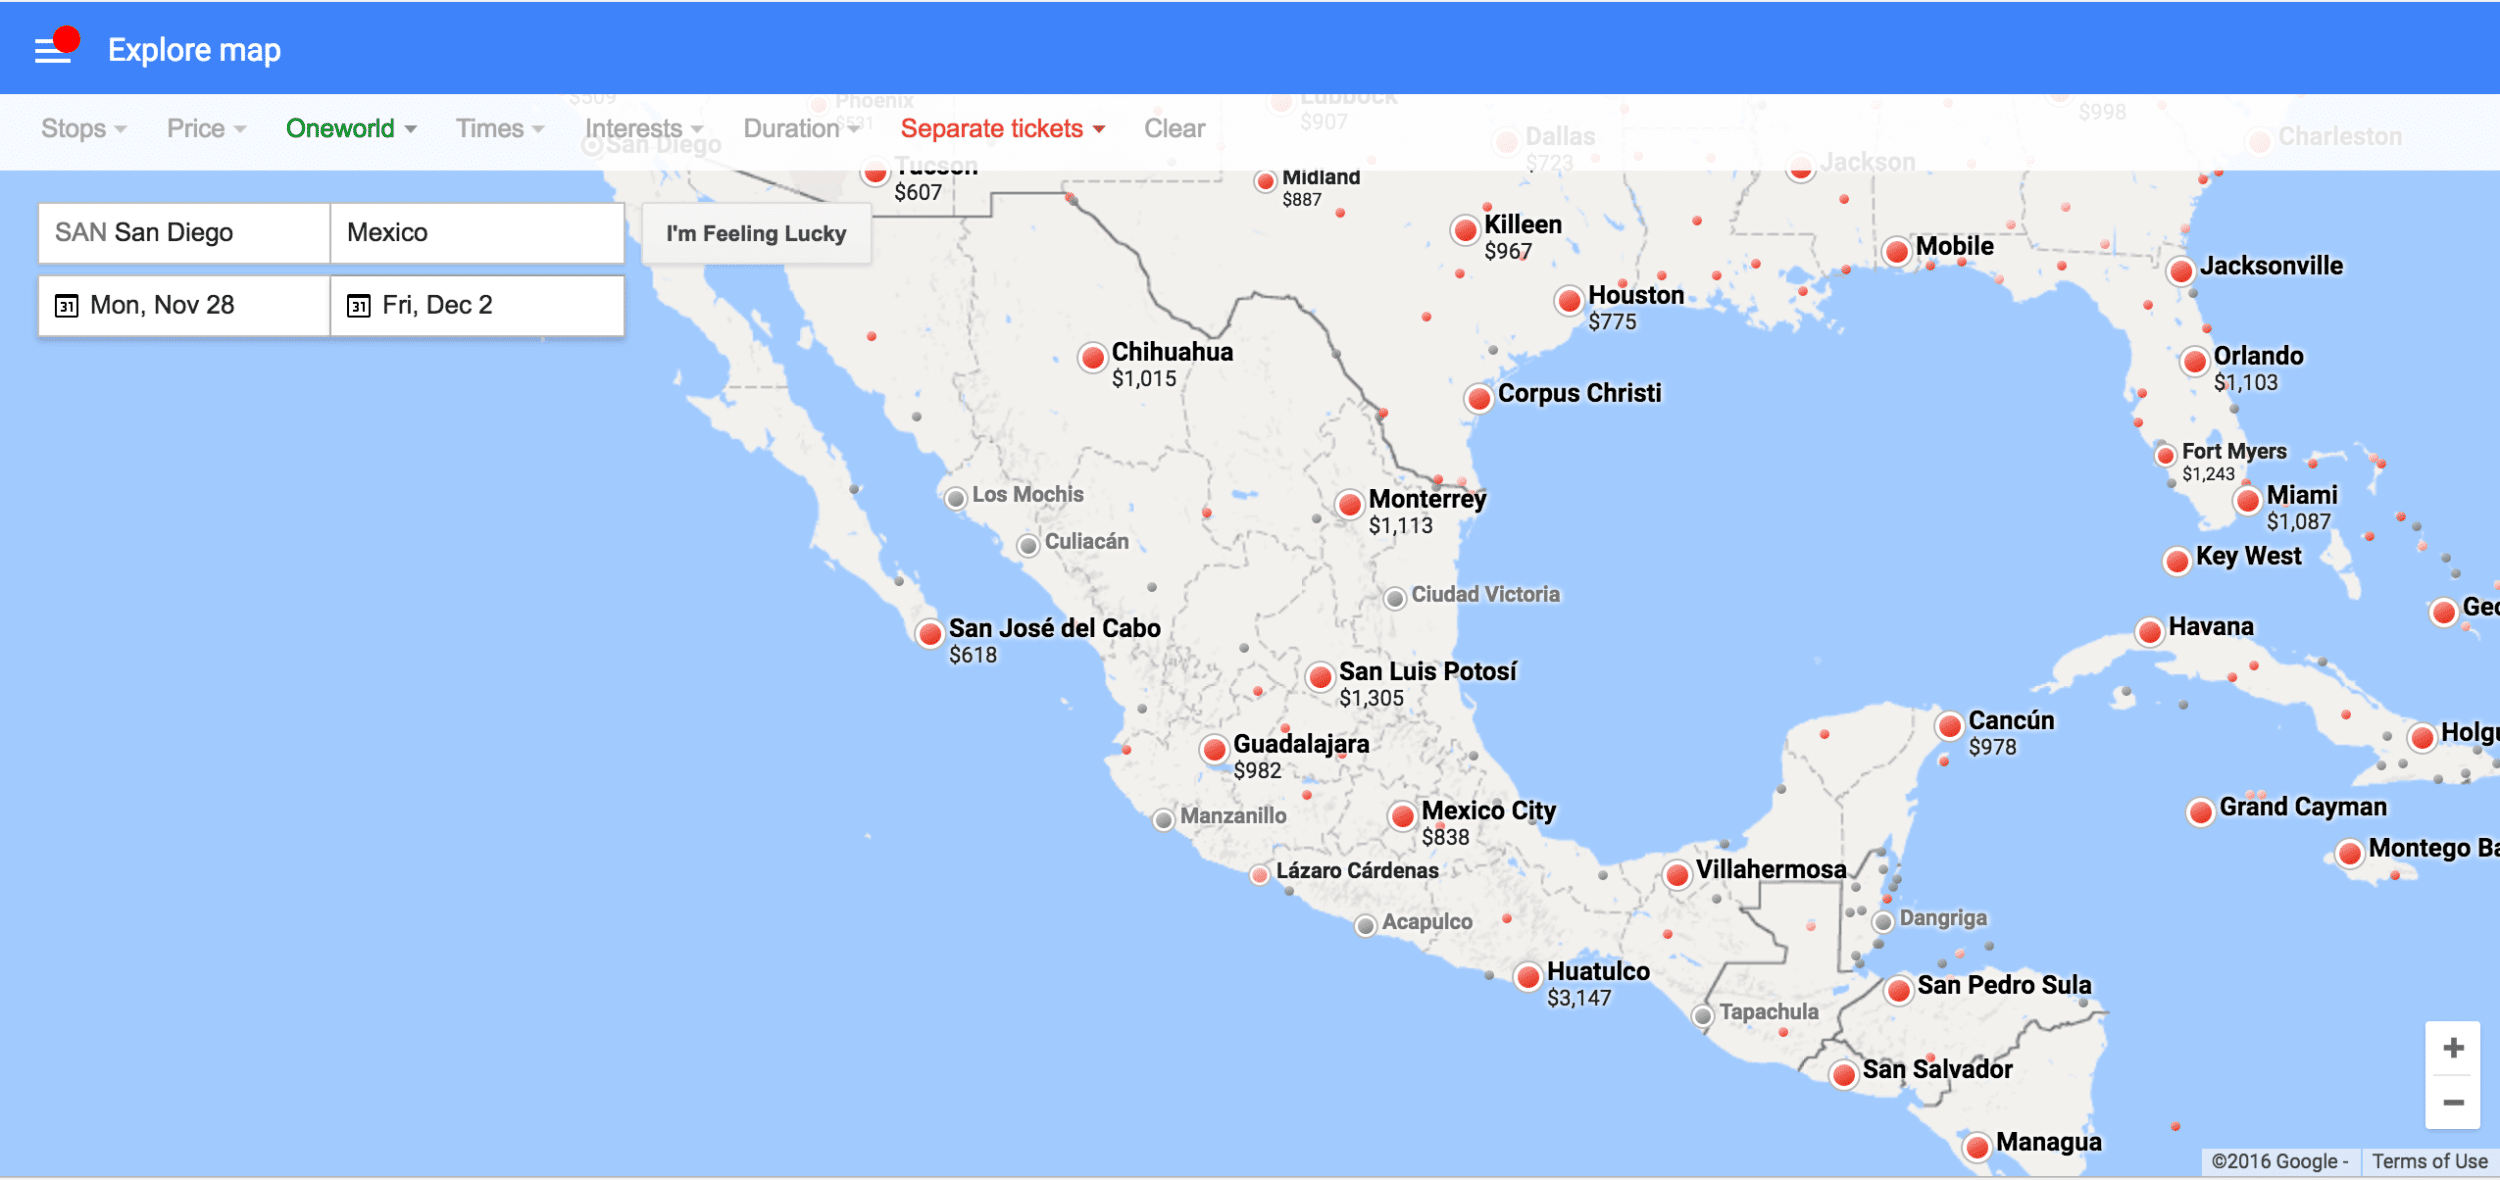 The Explore Destinations feature on Google Flights